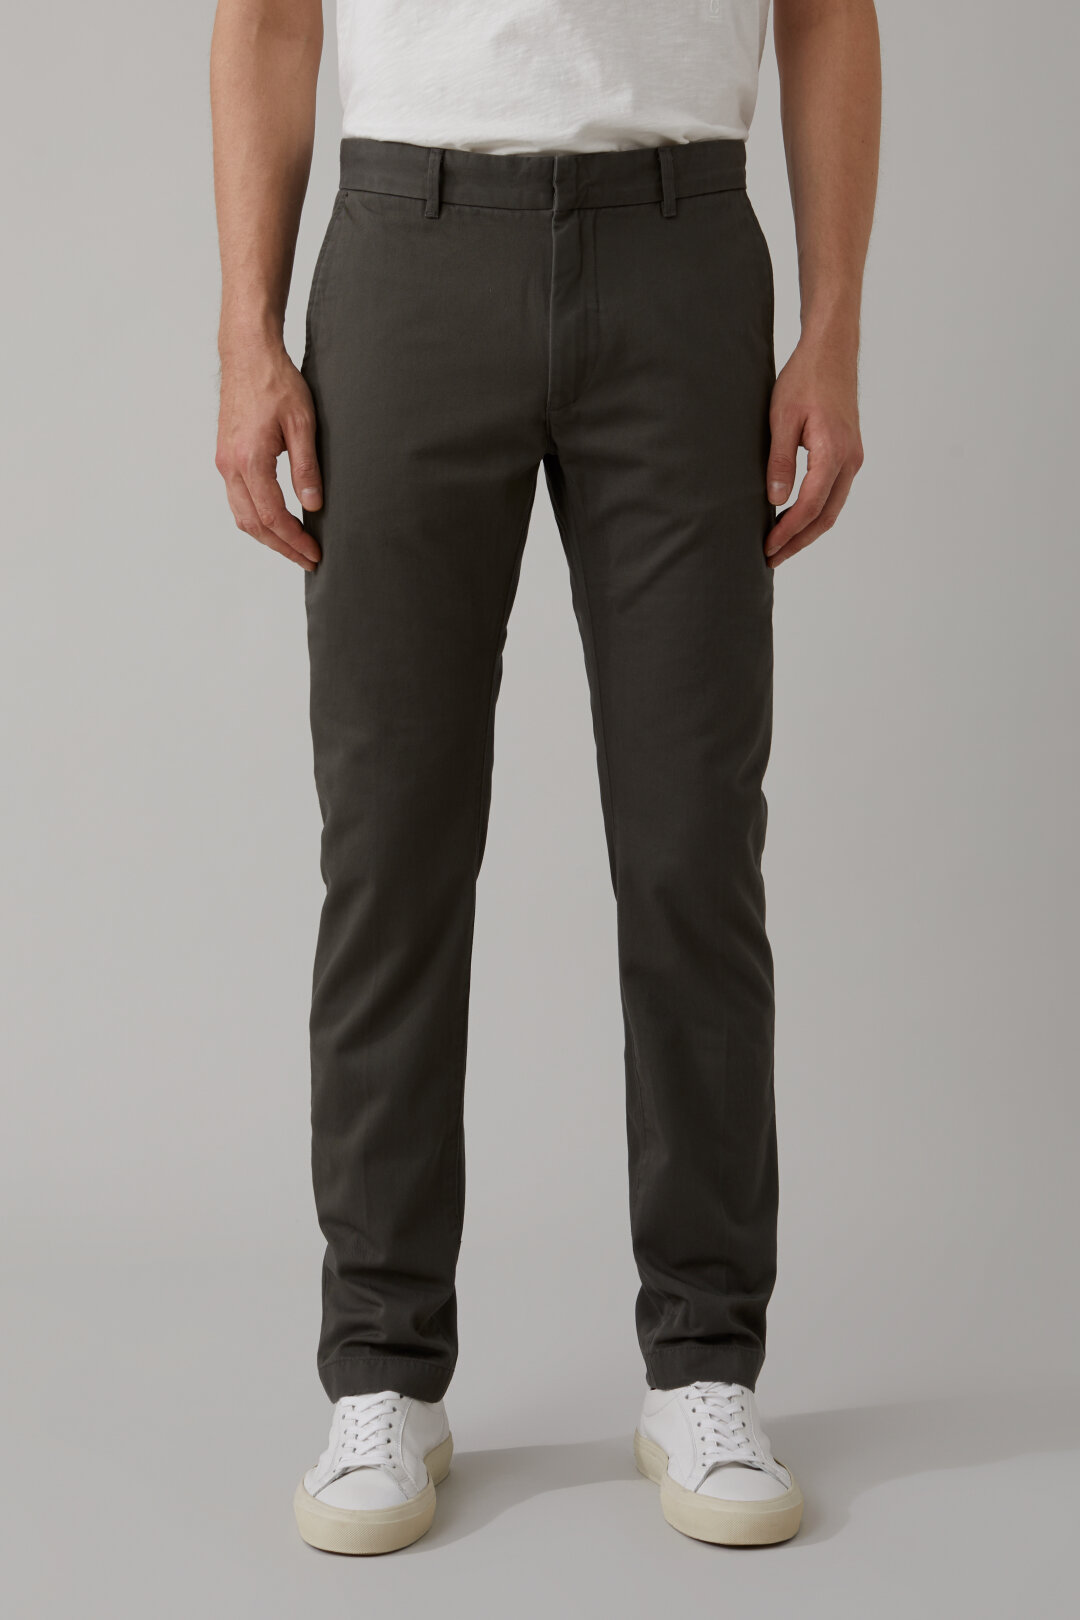 Clifton Slim Japanese Chino